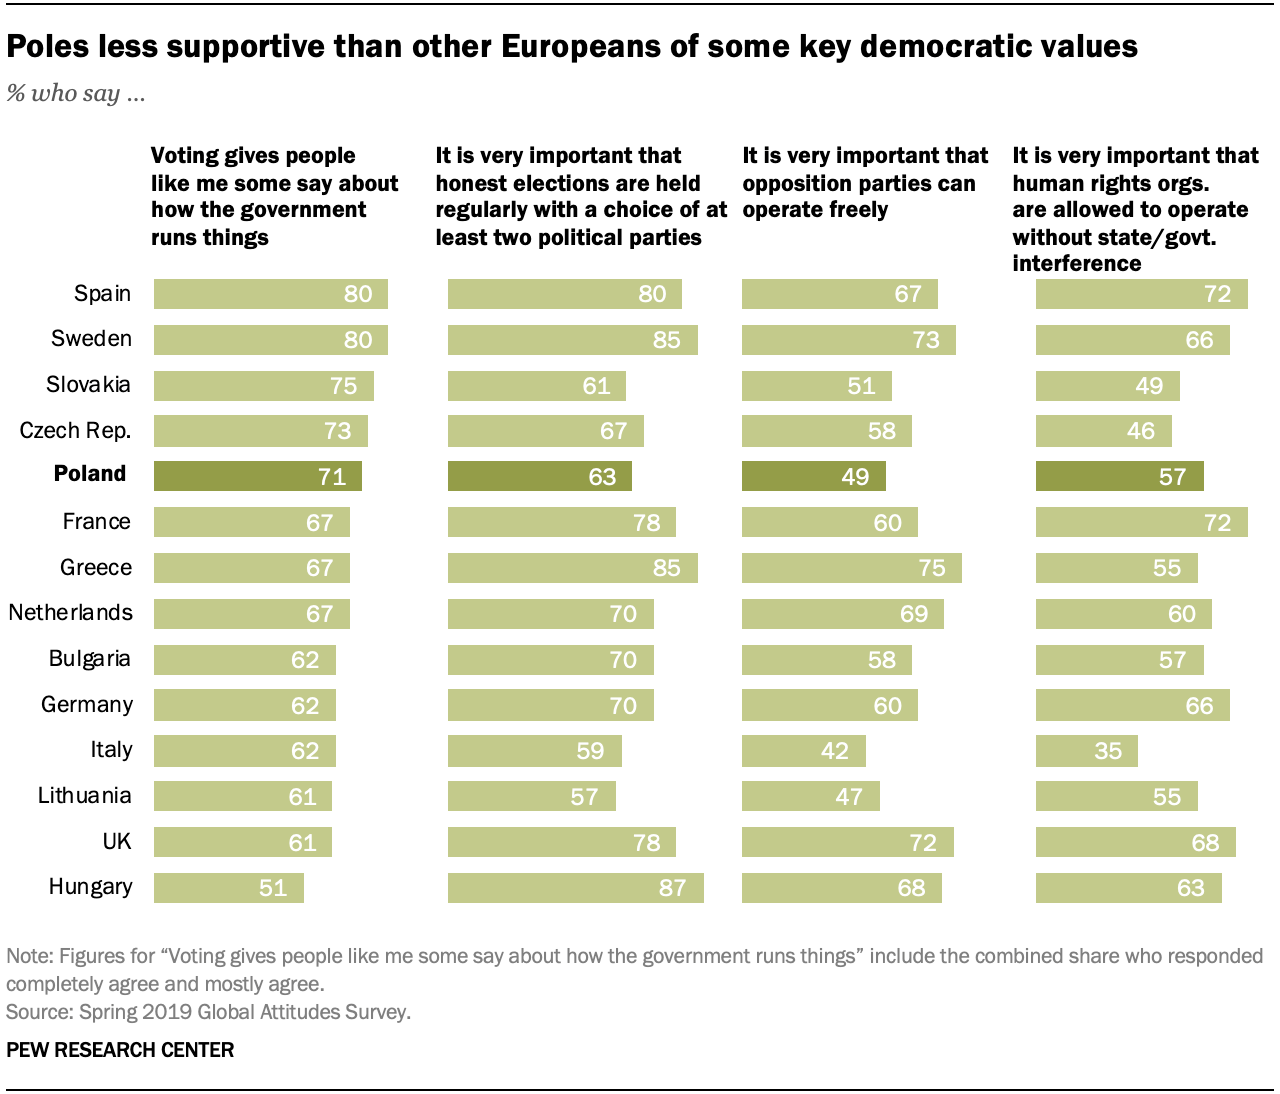 Poles less supportive than other Europeans of some key democratic values